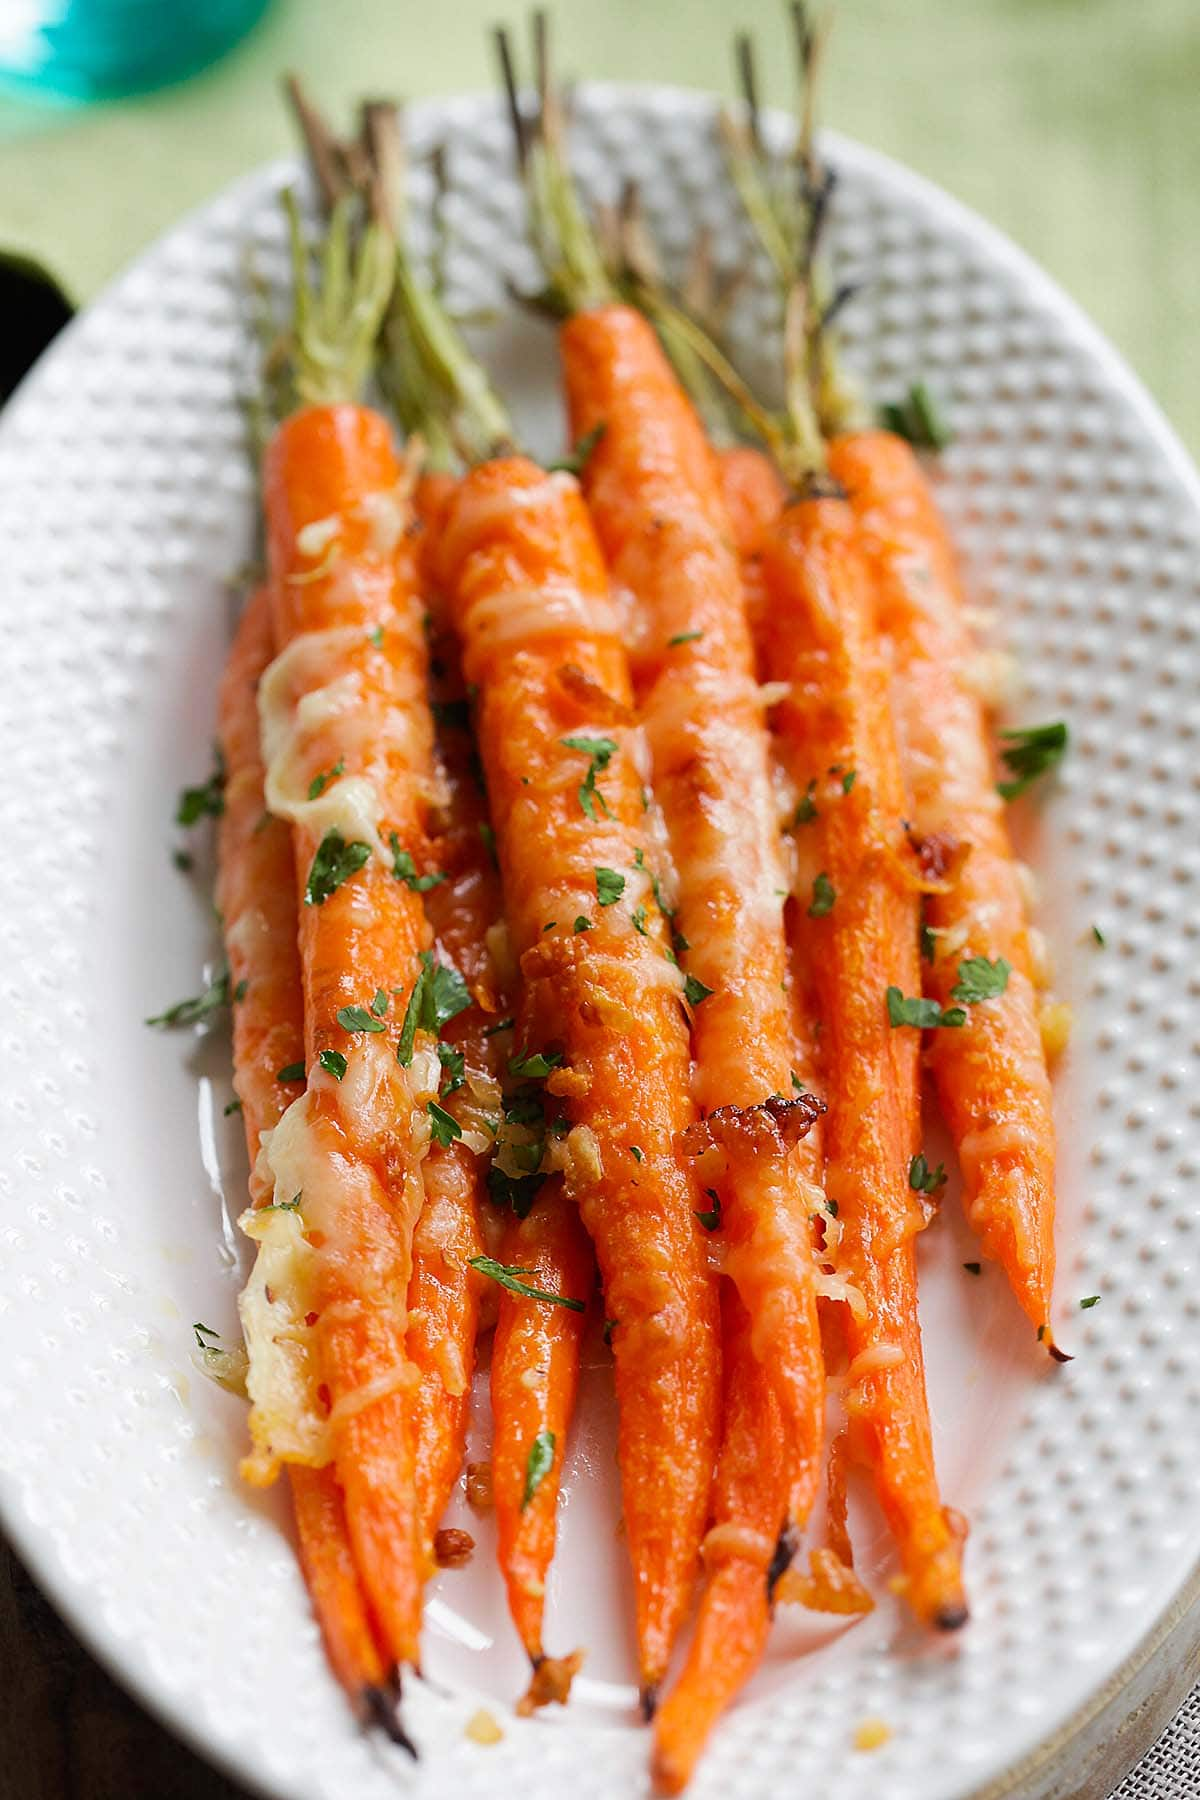 Garlic parmesan roasted carrot is one of the best savory carrot recipes.